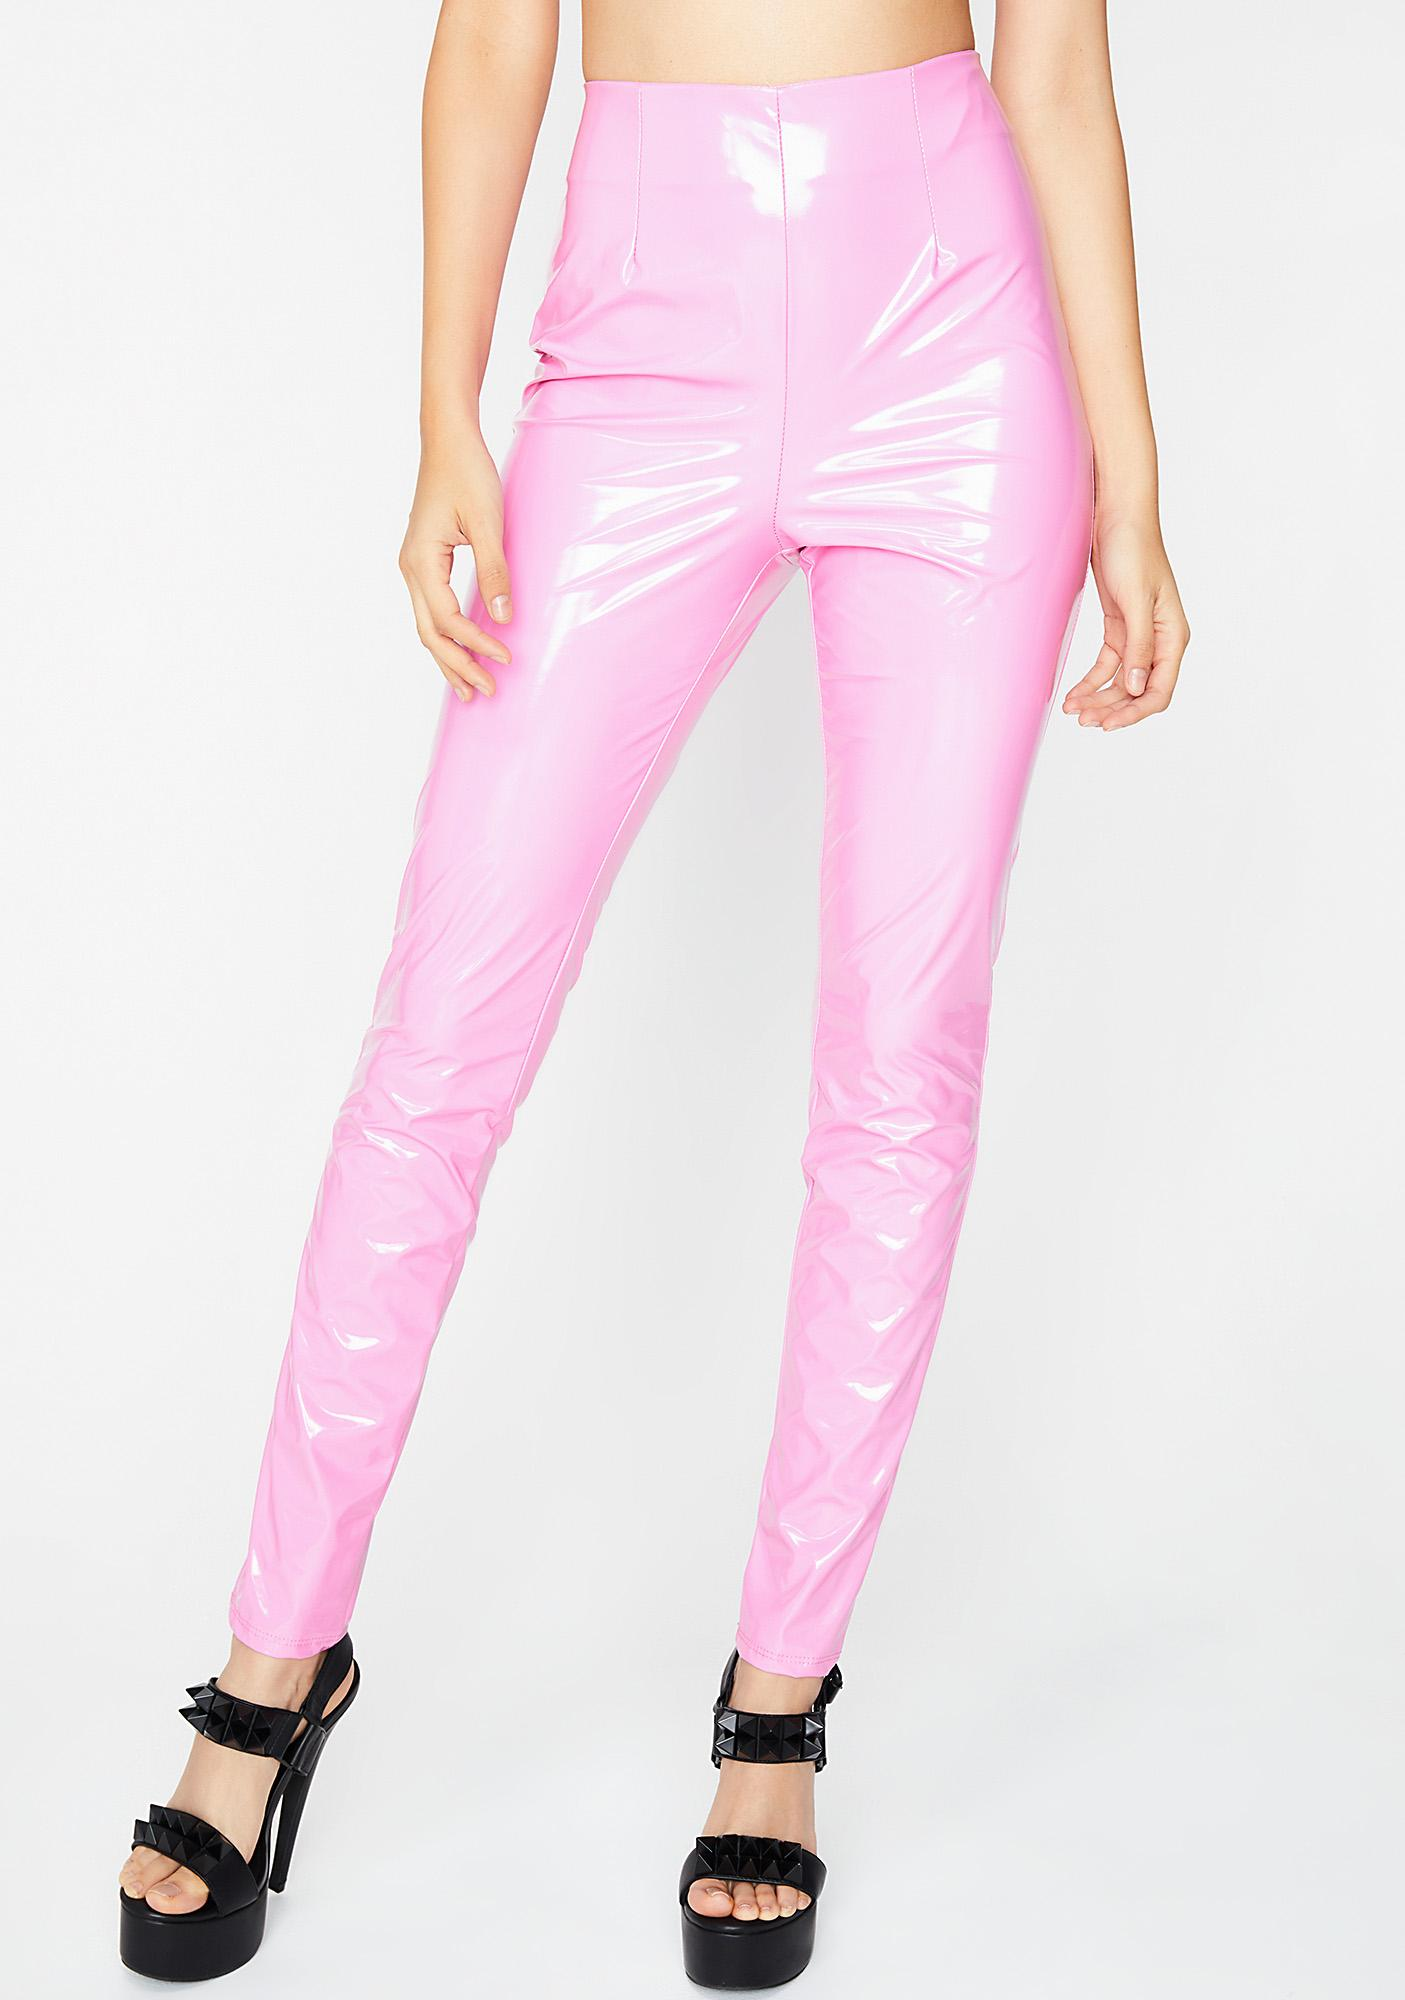 Inner Freak Vinyl Pants